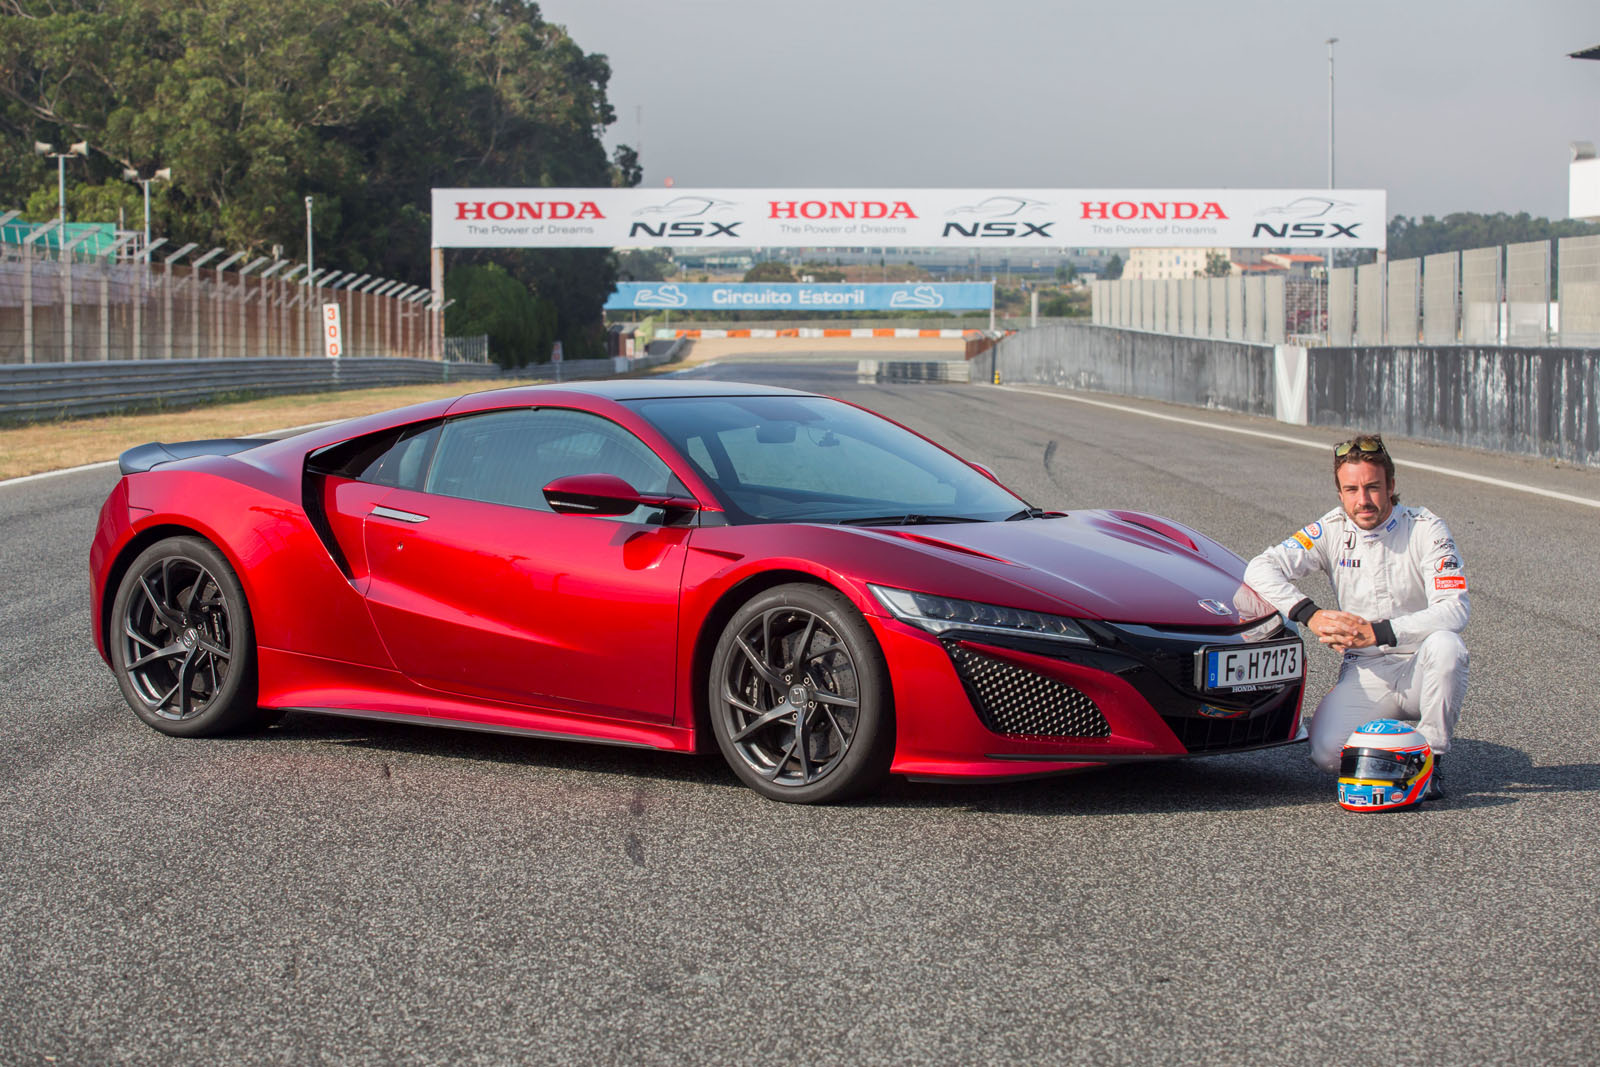 fernando alonso stoffel vandoorne demonstrate honda nsx at estoril w video. Black Bedroom Furniture Sets. Home Design Ideas